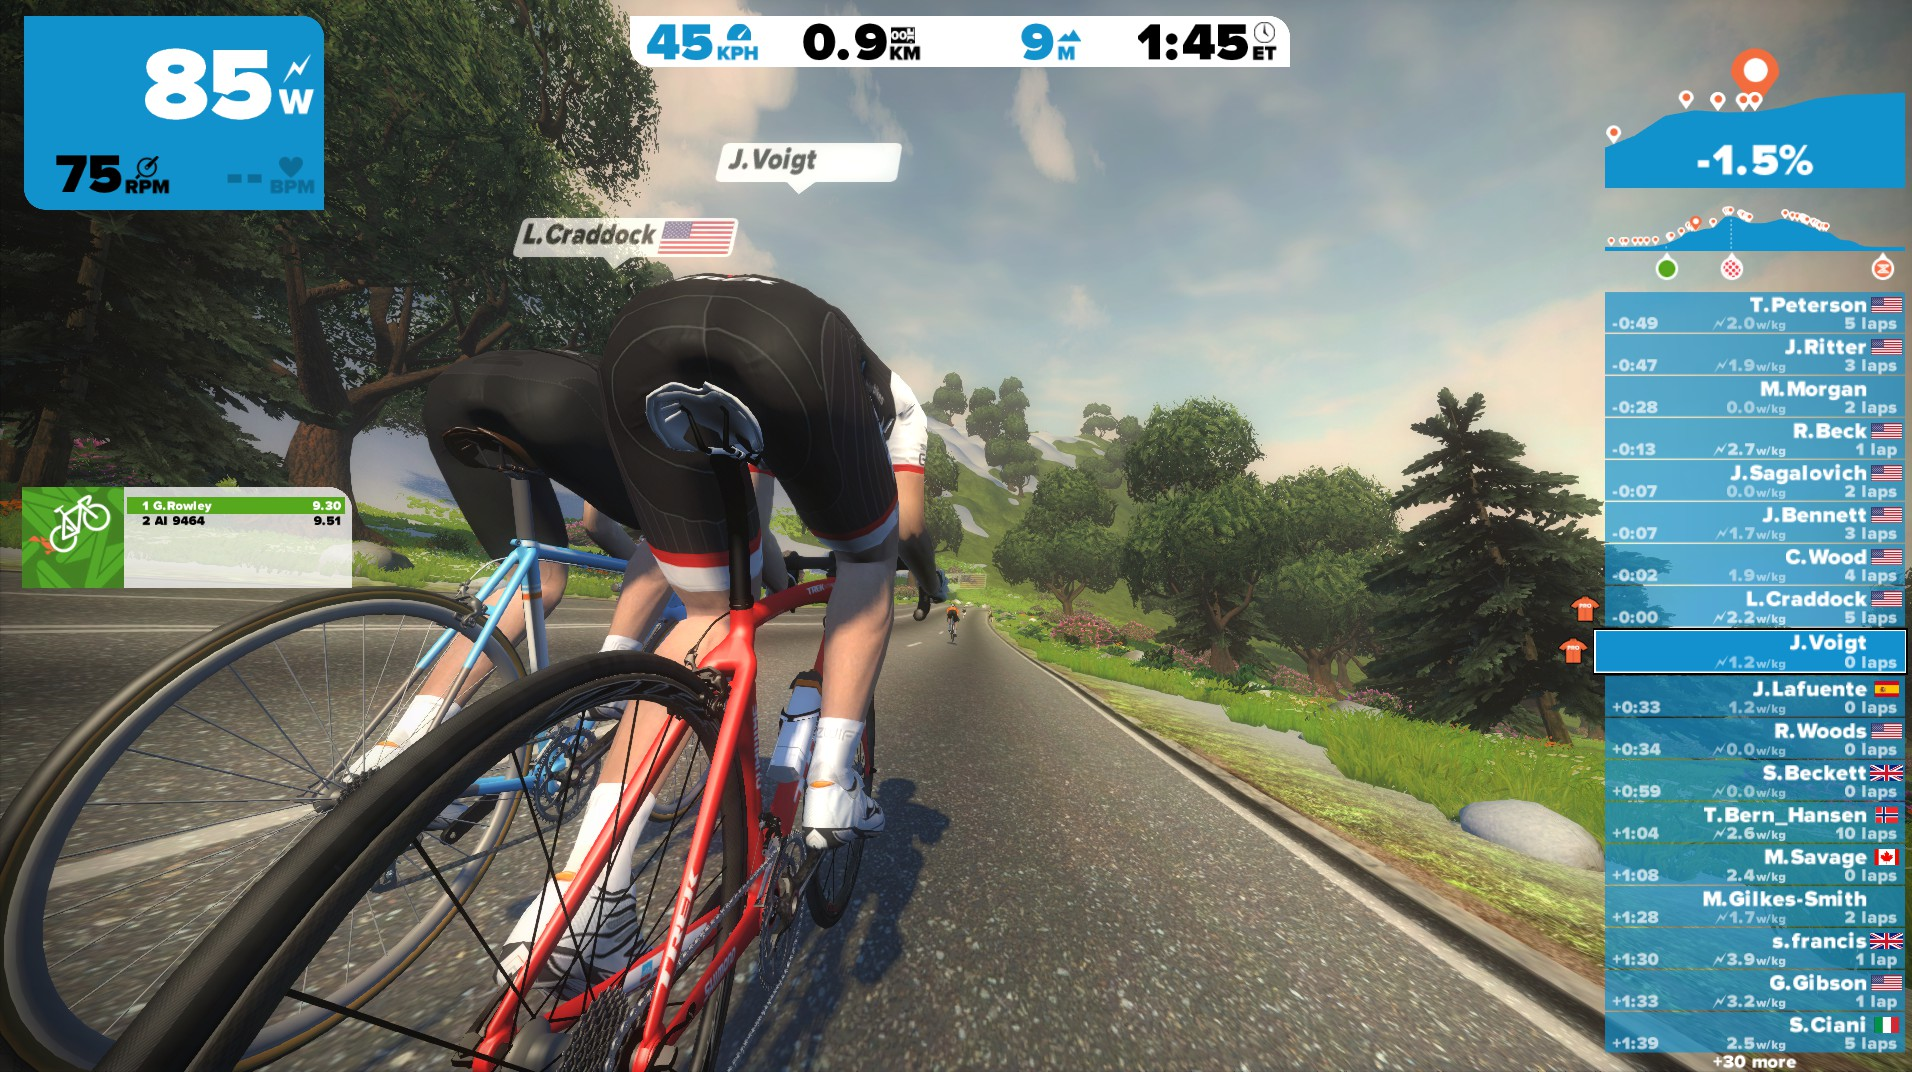 Zwift announces Voigt, Ten Dam as ambassadors | Bicycle